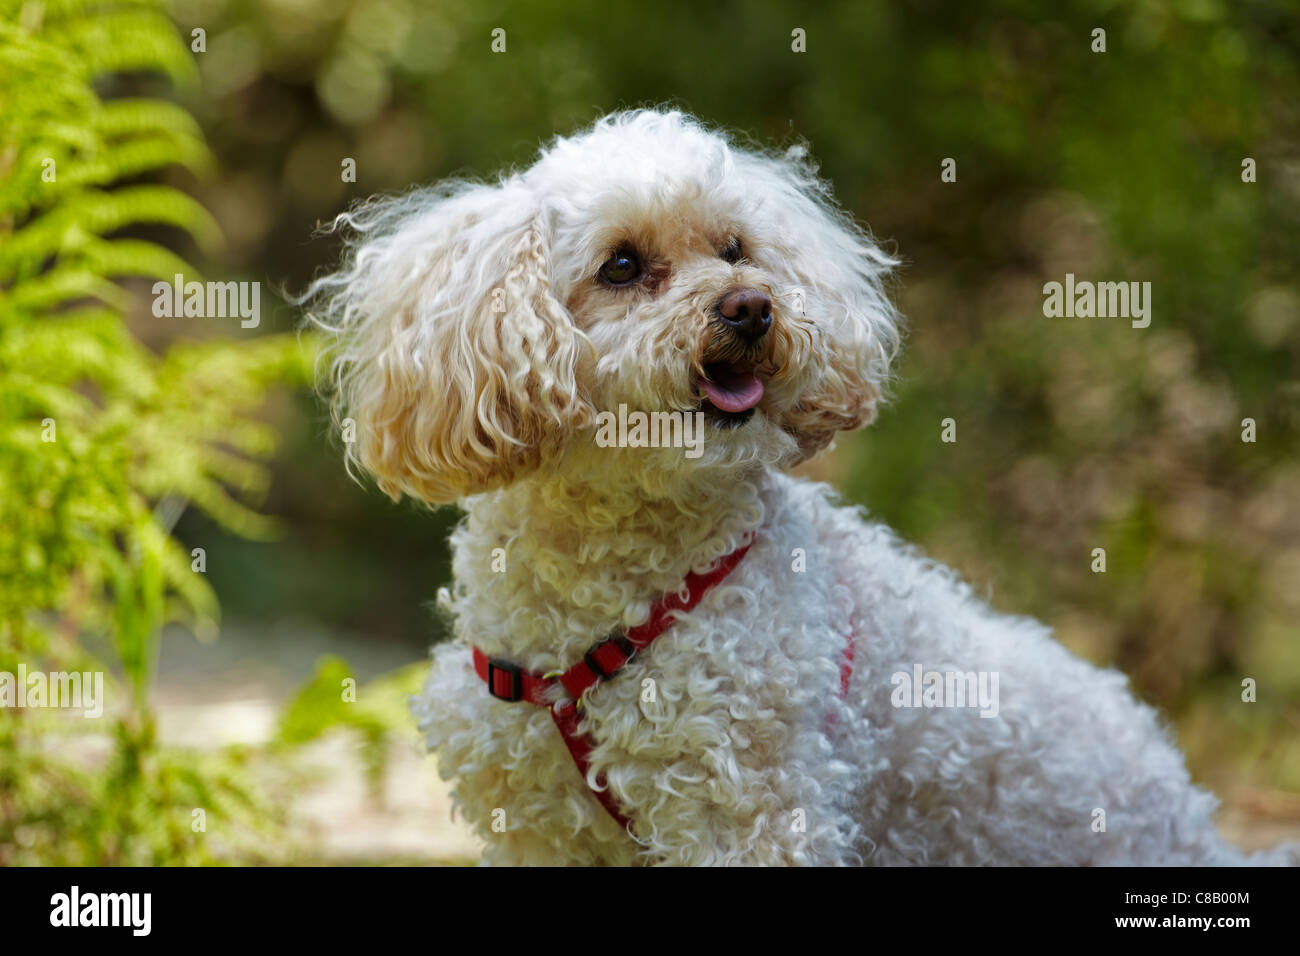 Toy Poodle in a Garden in Wales, UK Stock Photo